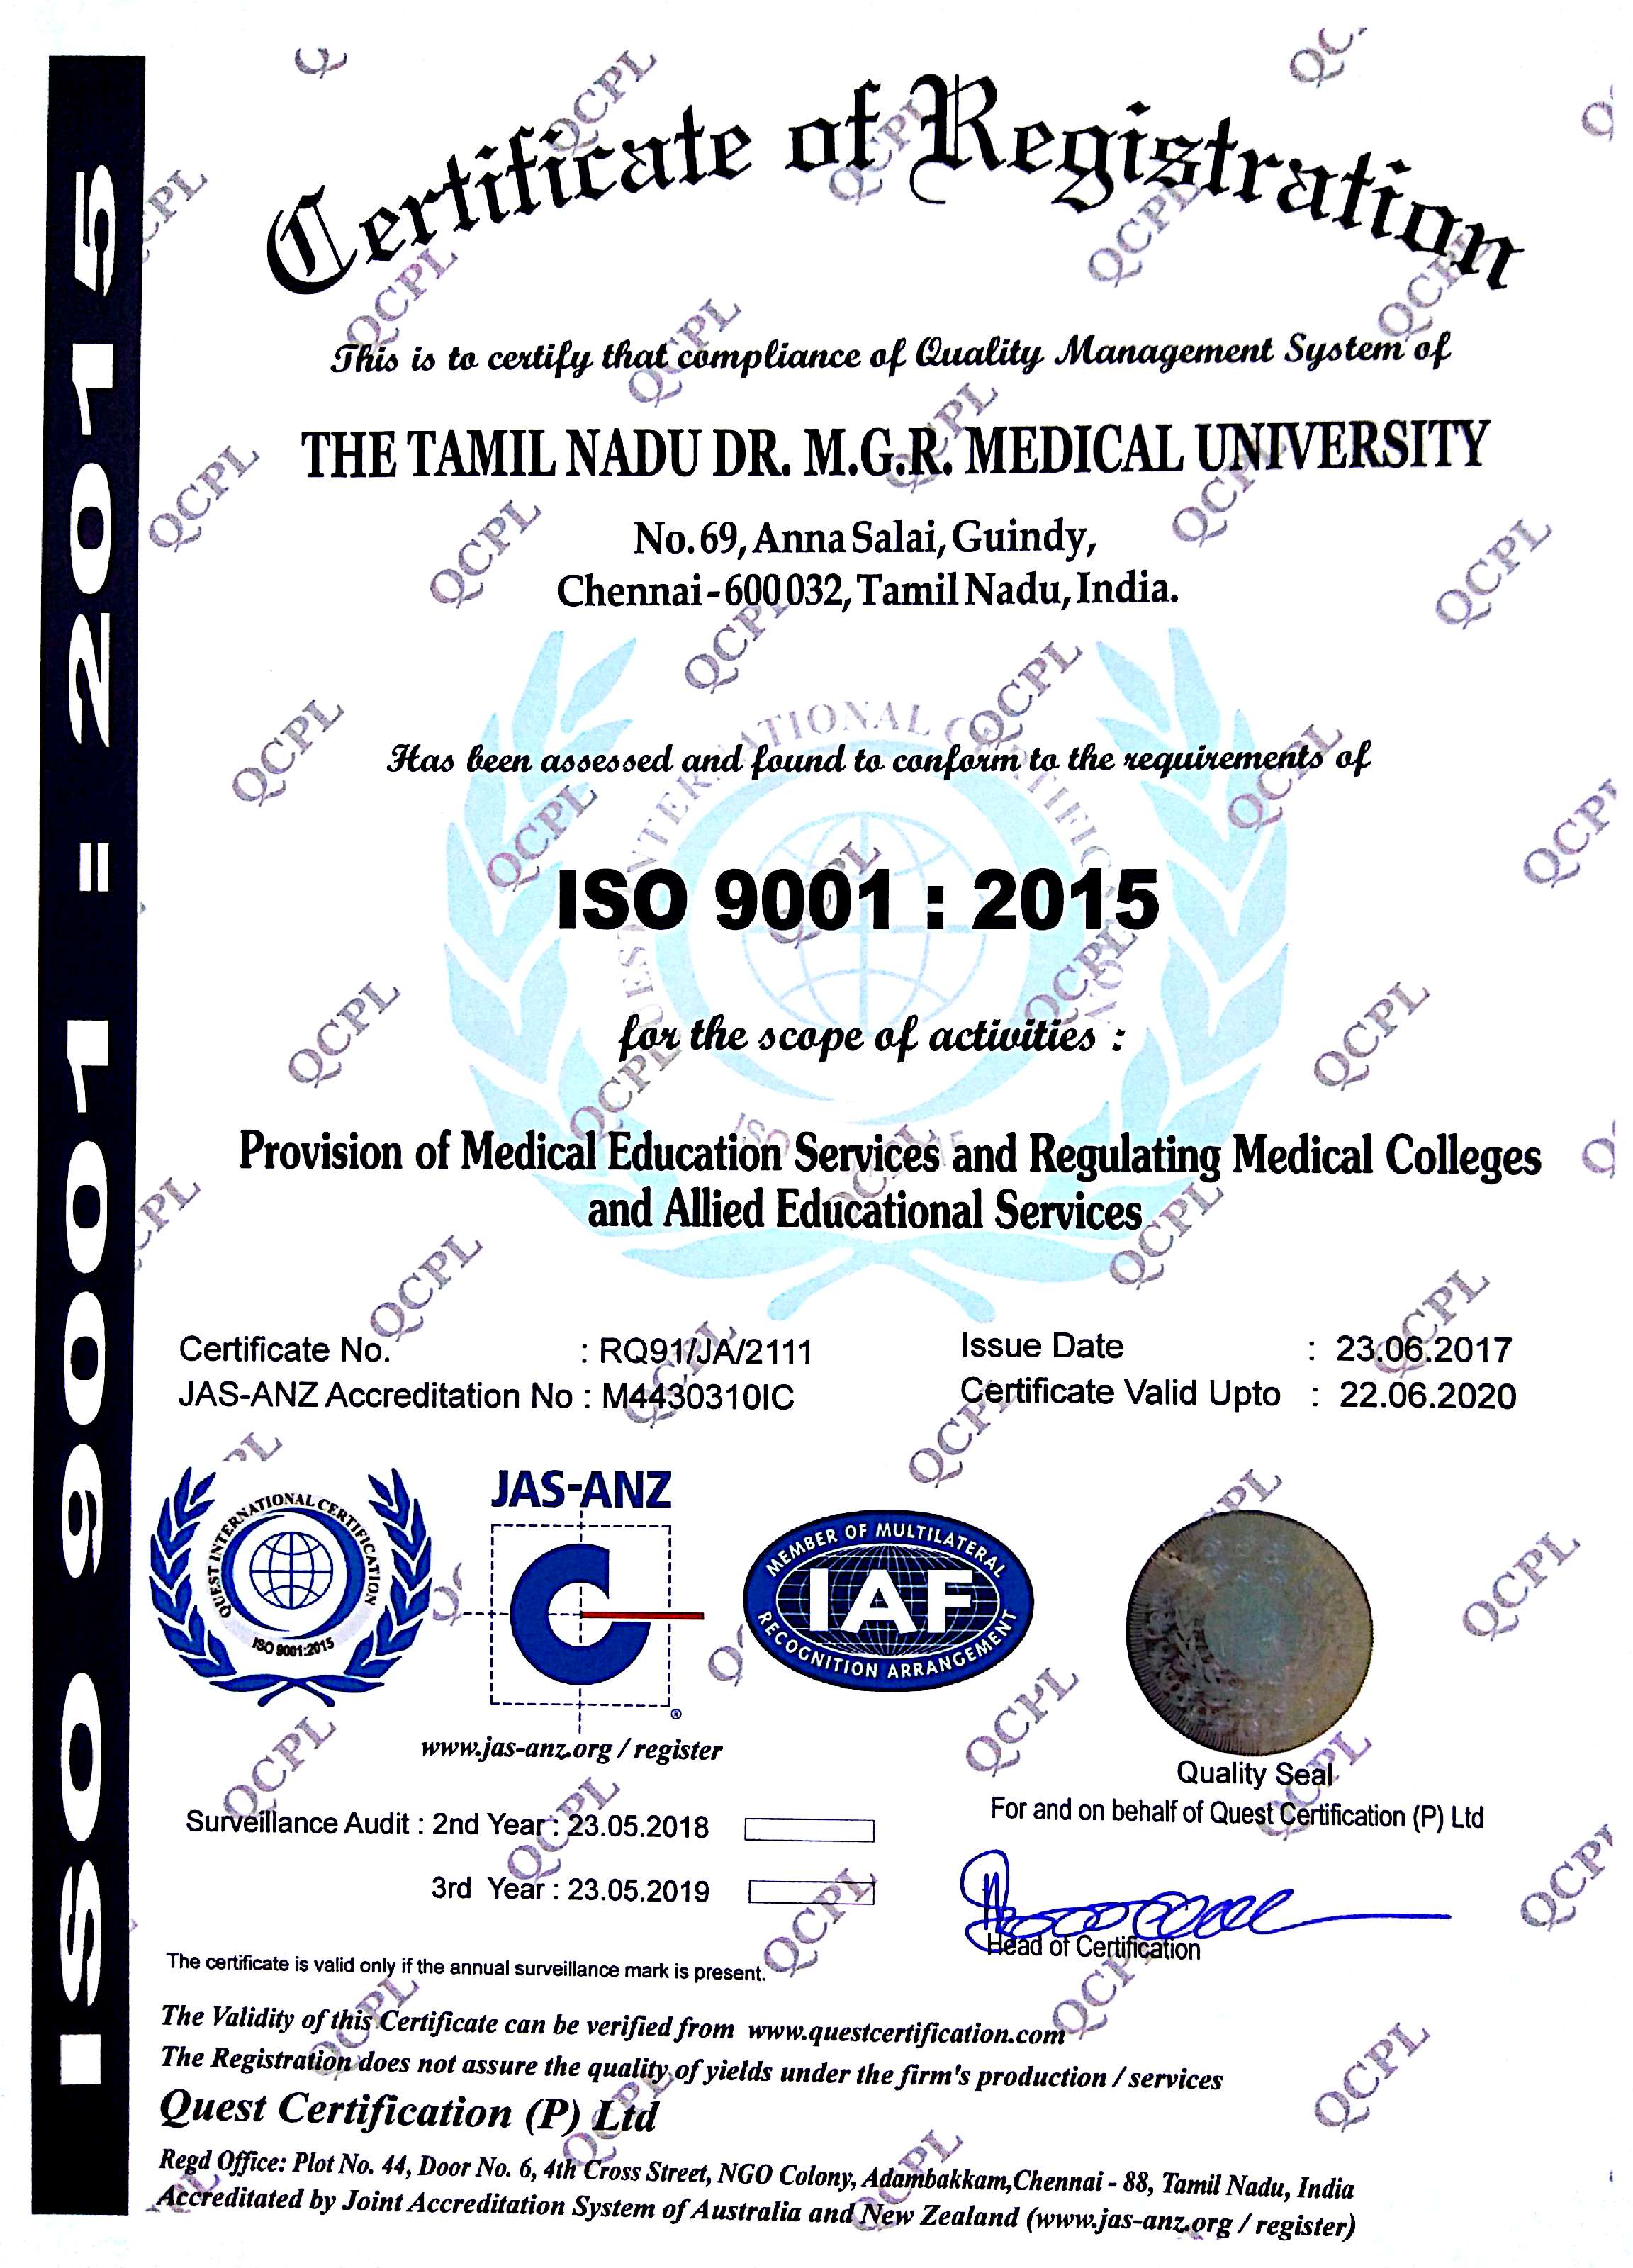 Iso Certificate The Tamilnadu Drmgr Medical University